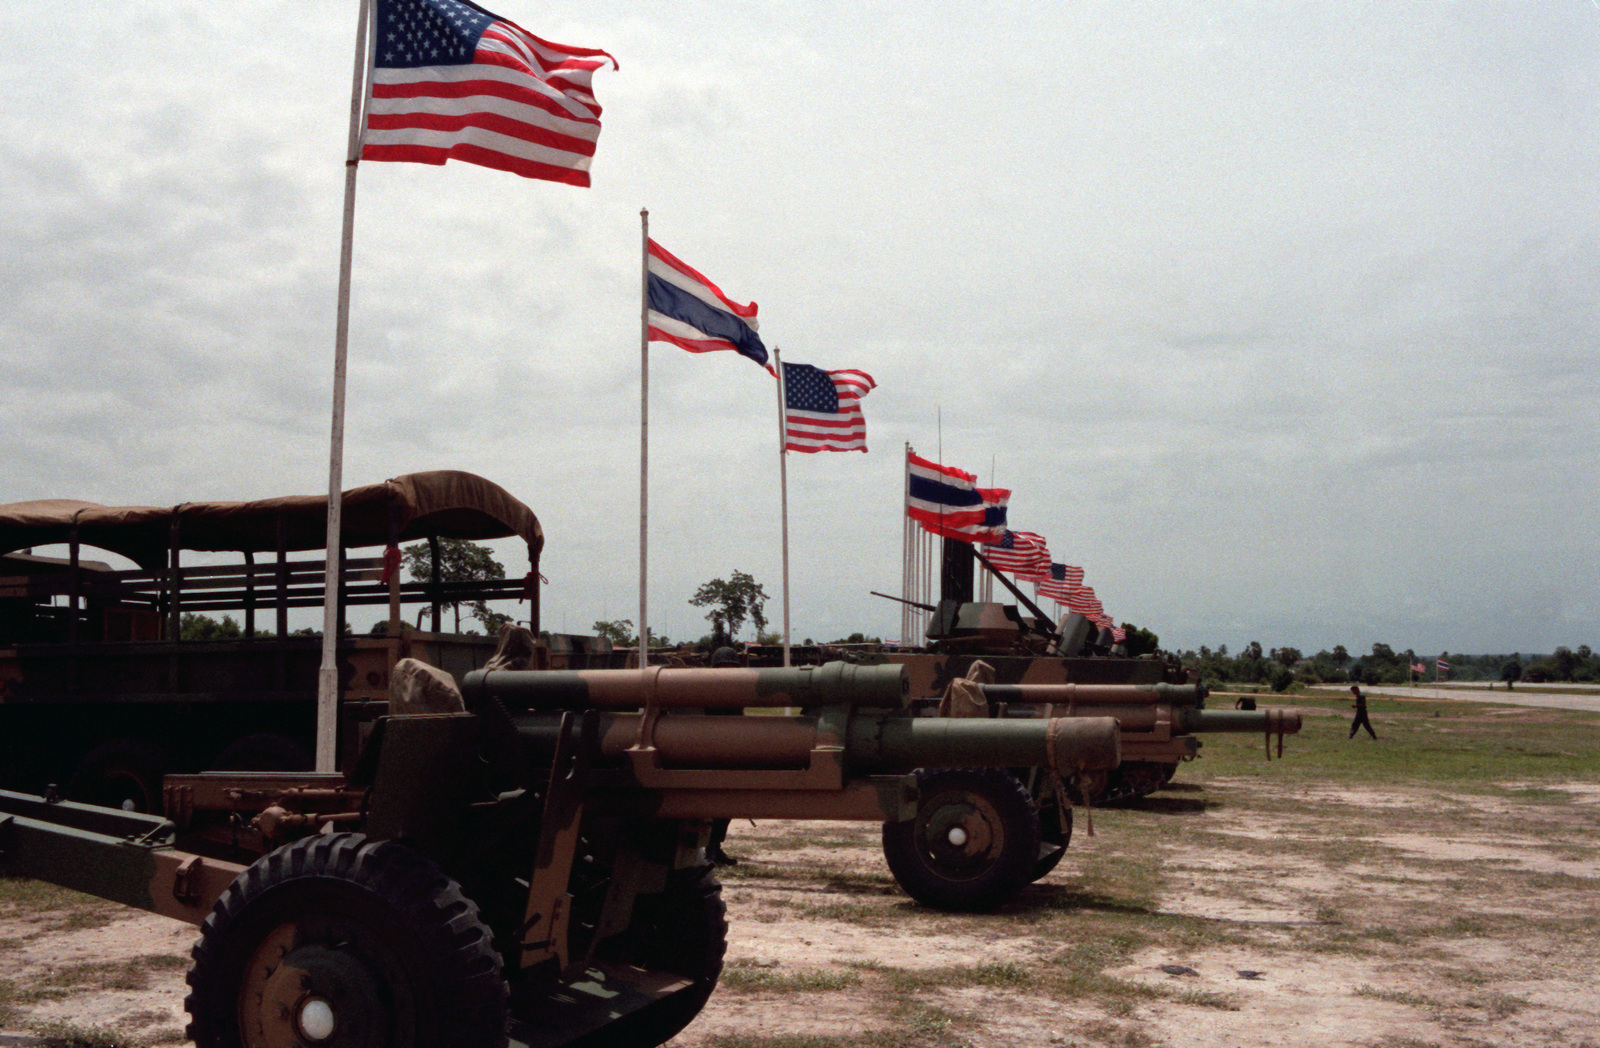 M101 105 mm Howitzers are lined up under US and Thai flags